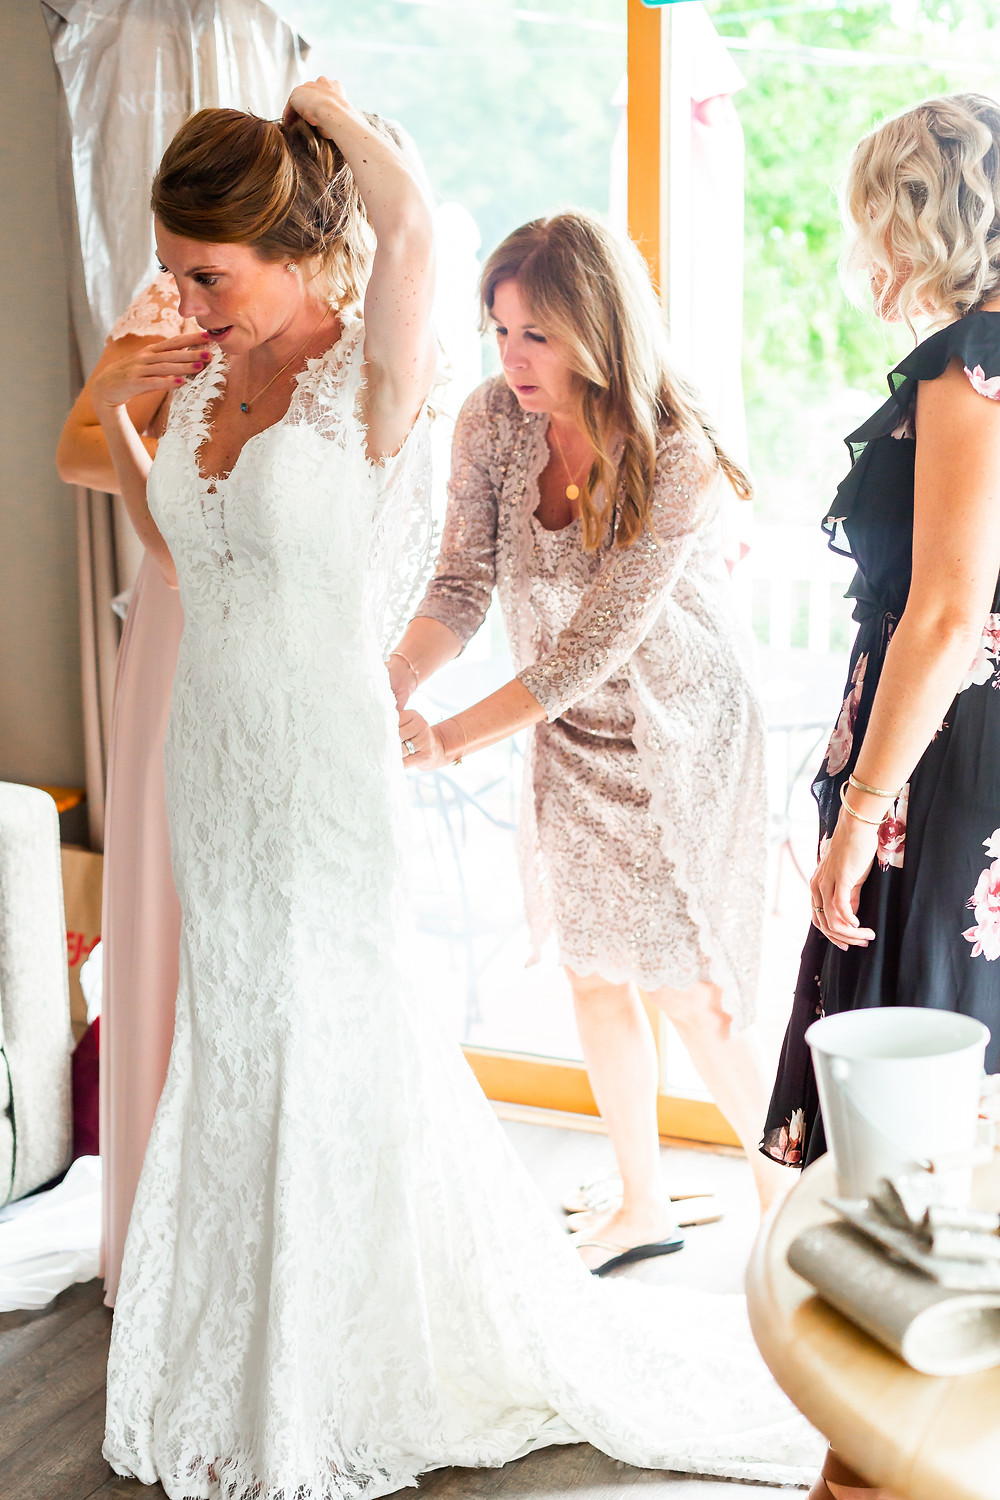 Elizabeth Ivy Photography captures wedding day details in Laconia New Hampshire.